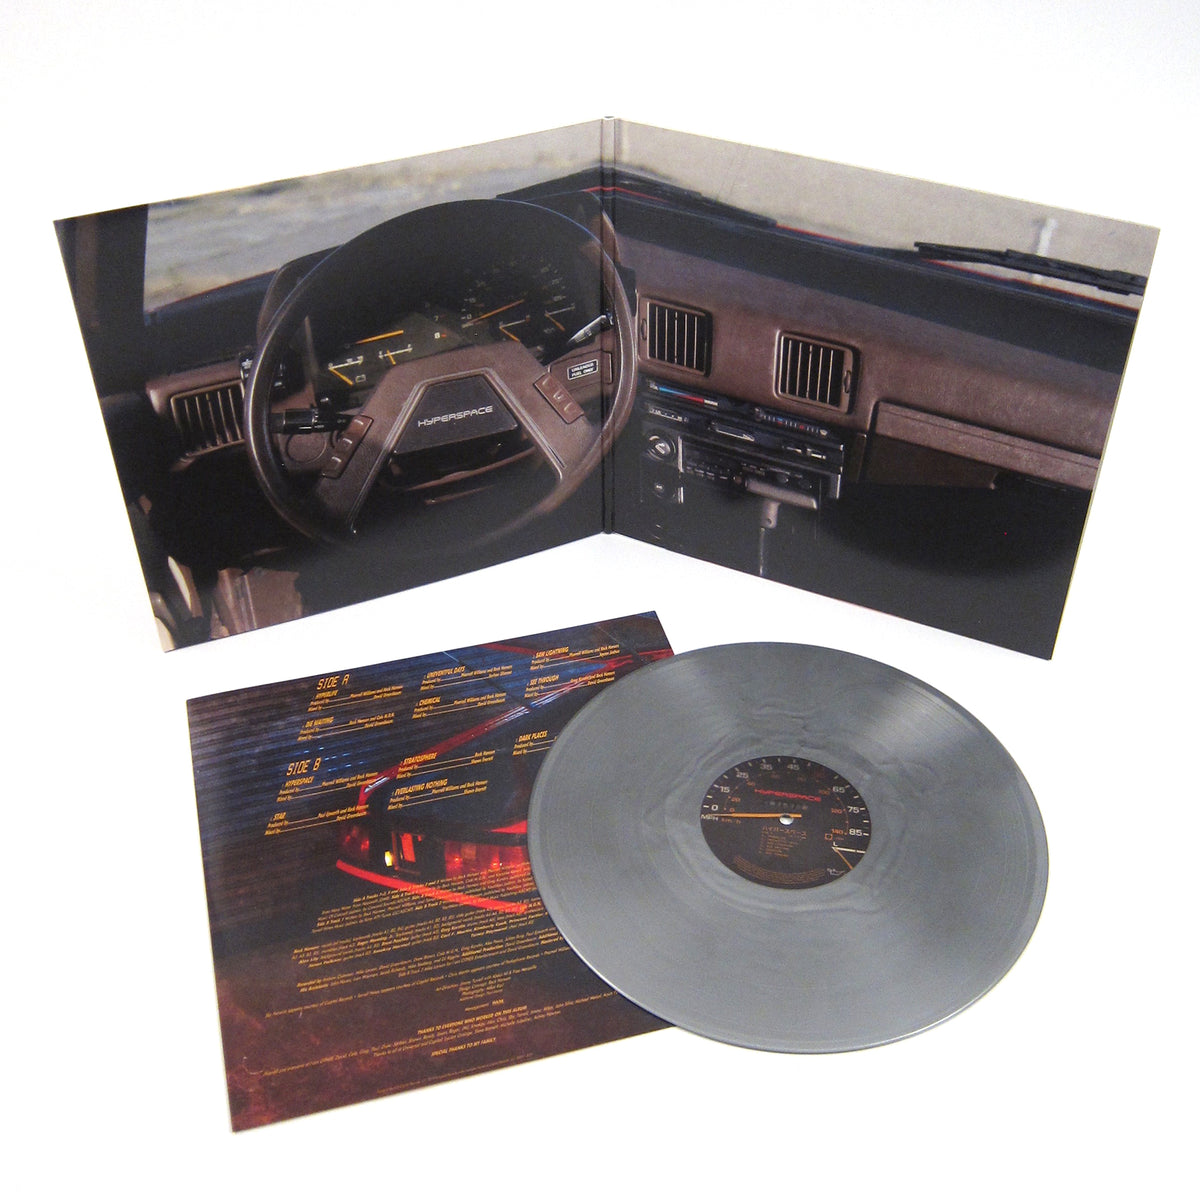 Beck: Hyperspace (Indie Exclusive Colored Vinyl) Vinyl LP